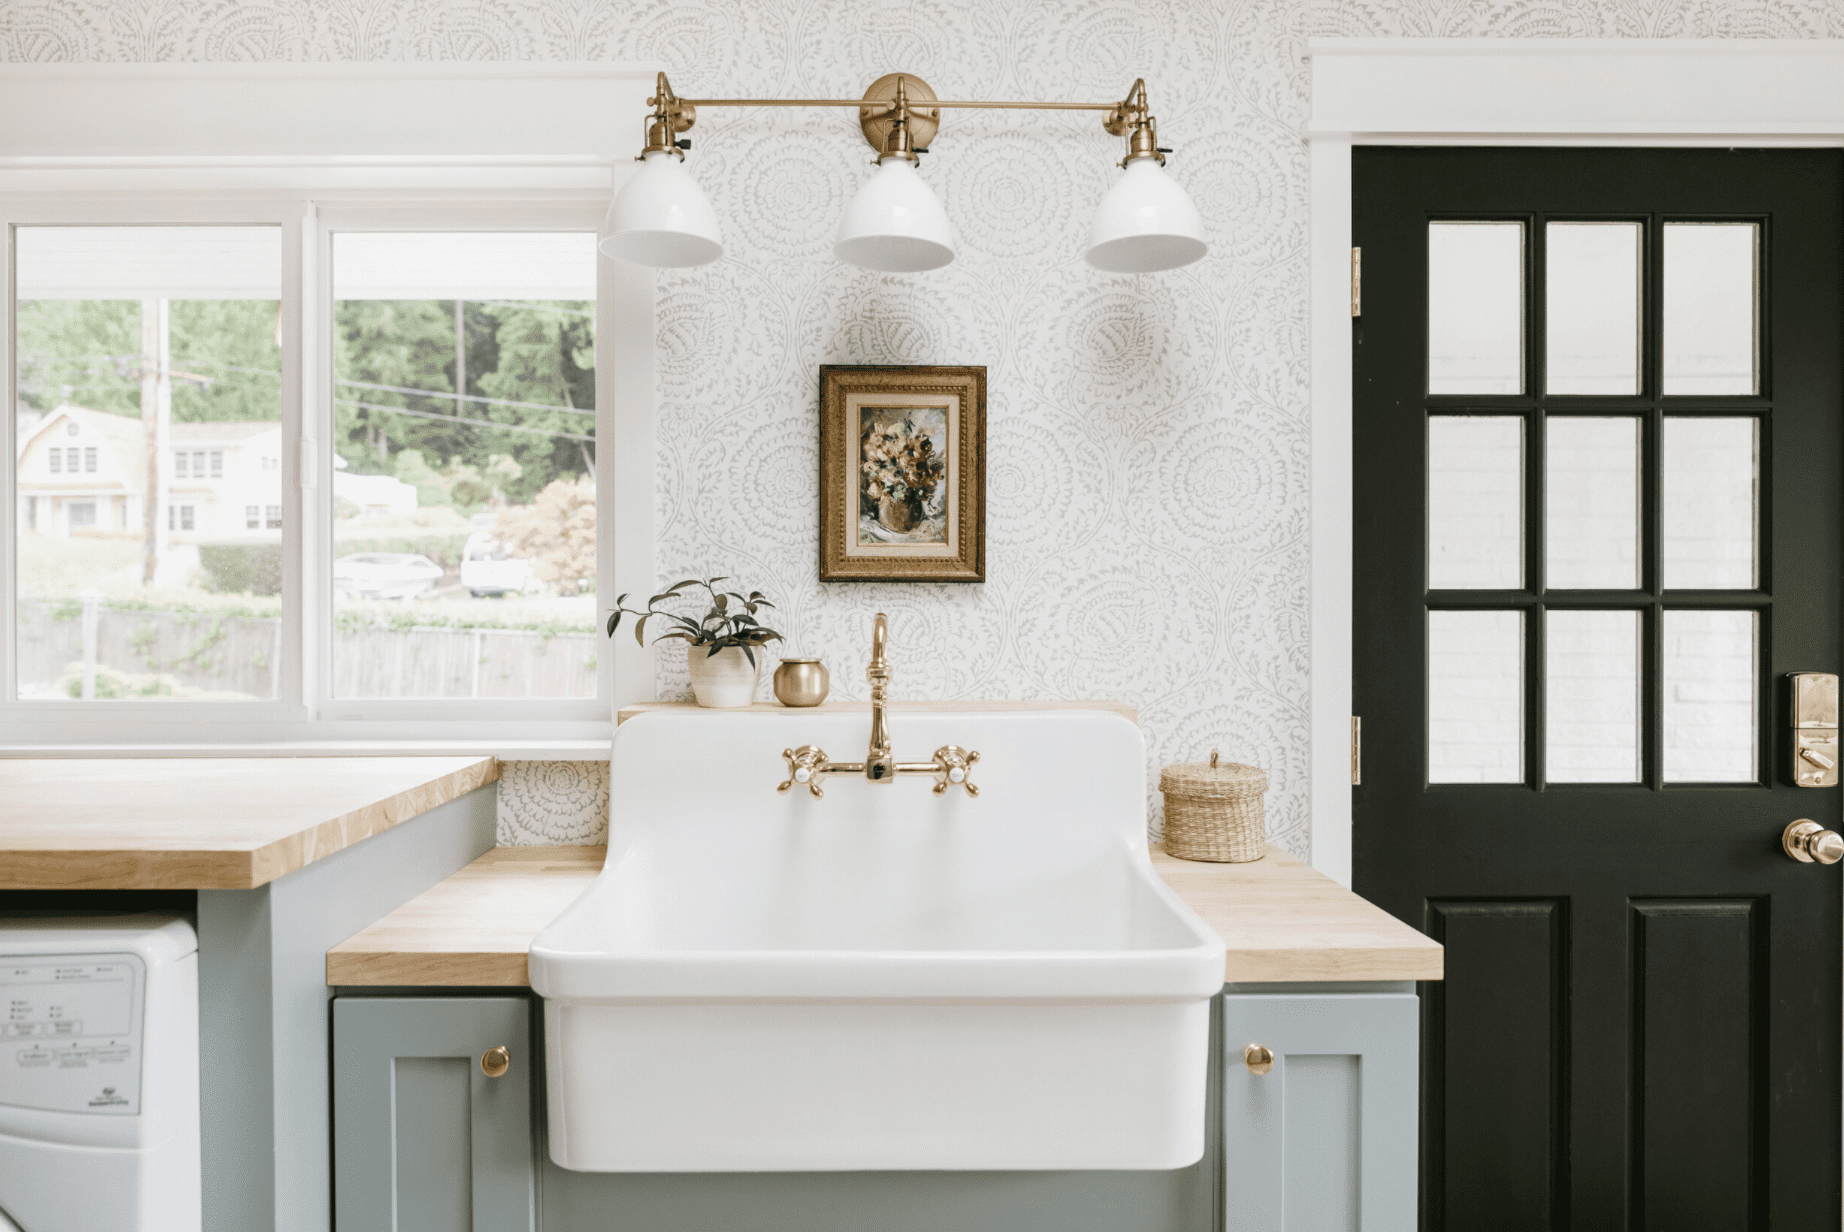 A kitchen lined with subtly printed wallpaper